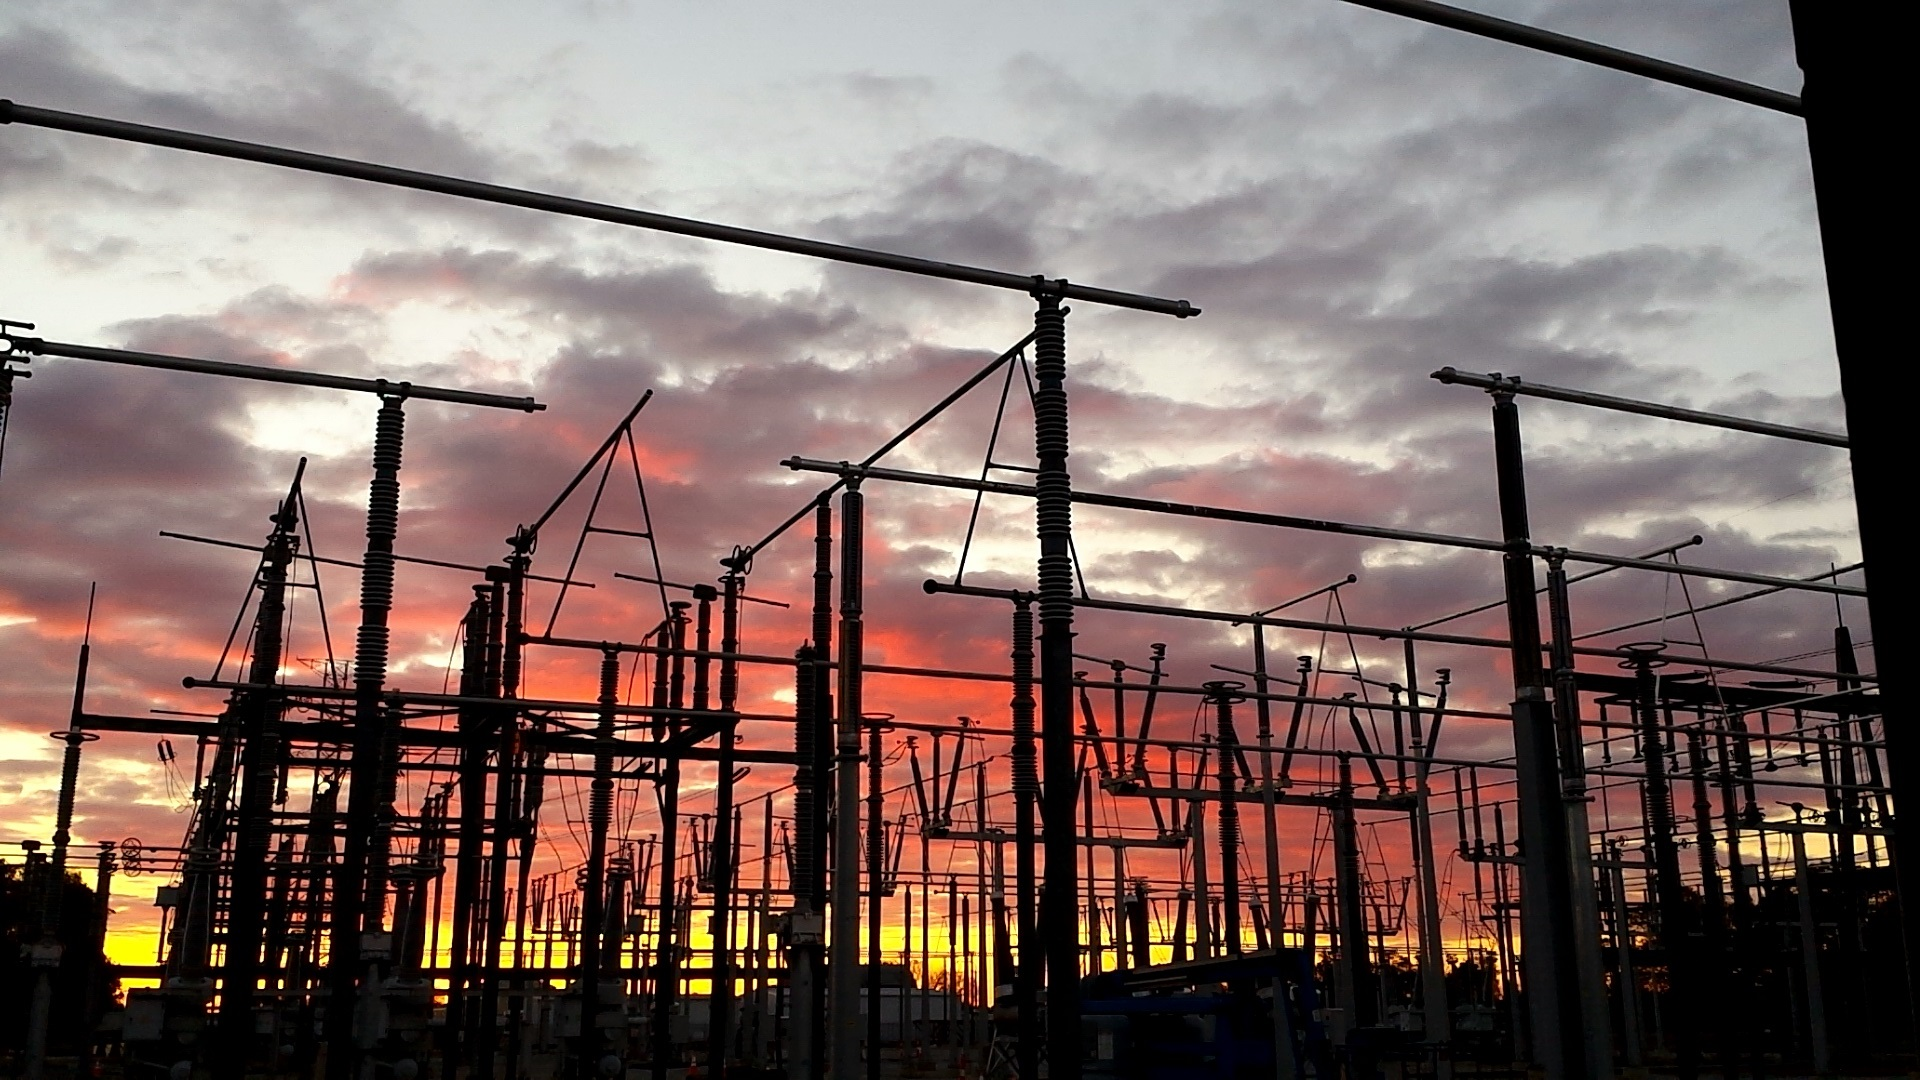 Bixby Substation